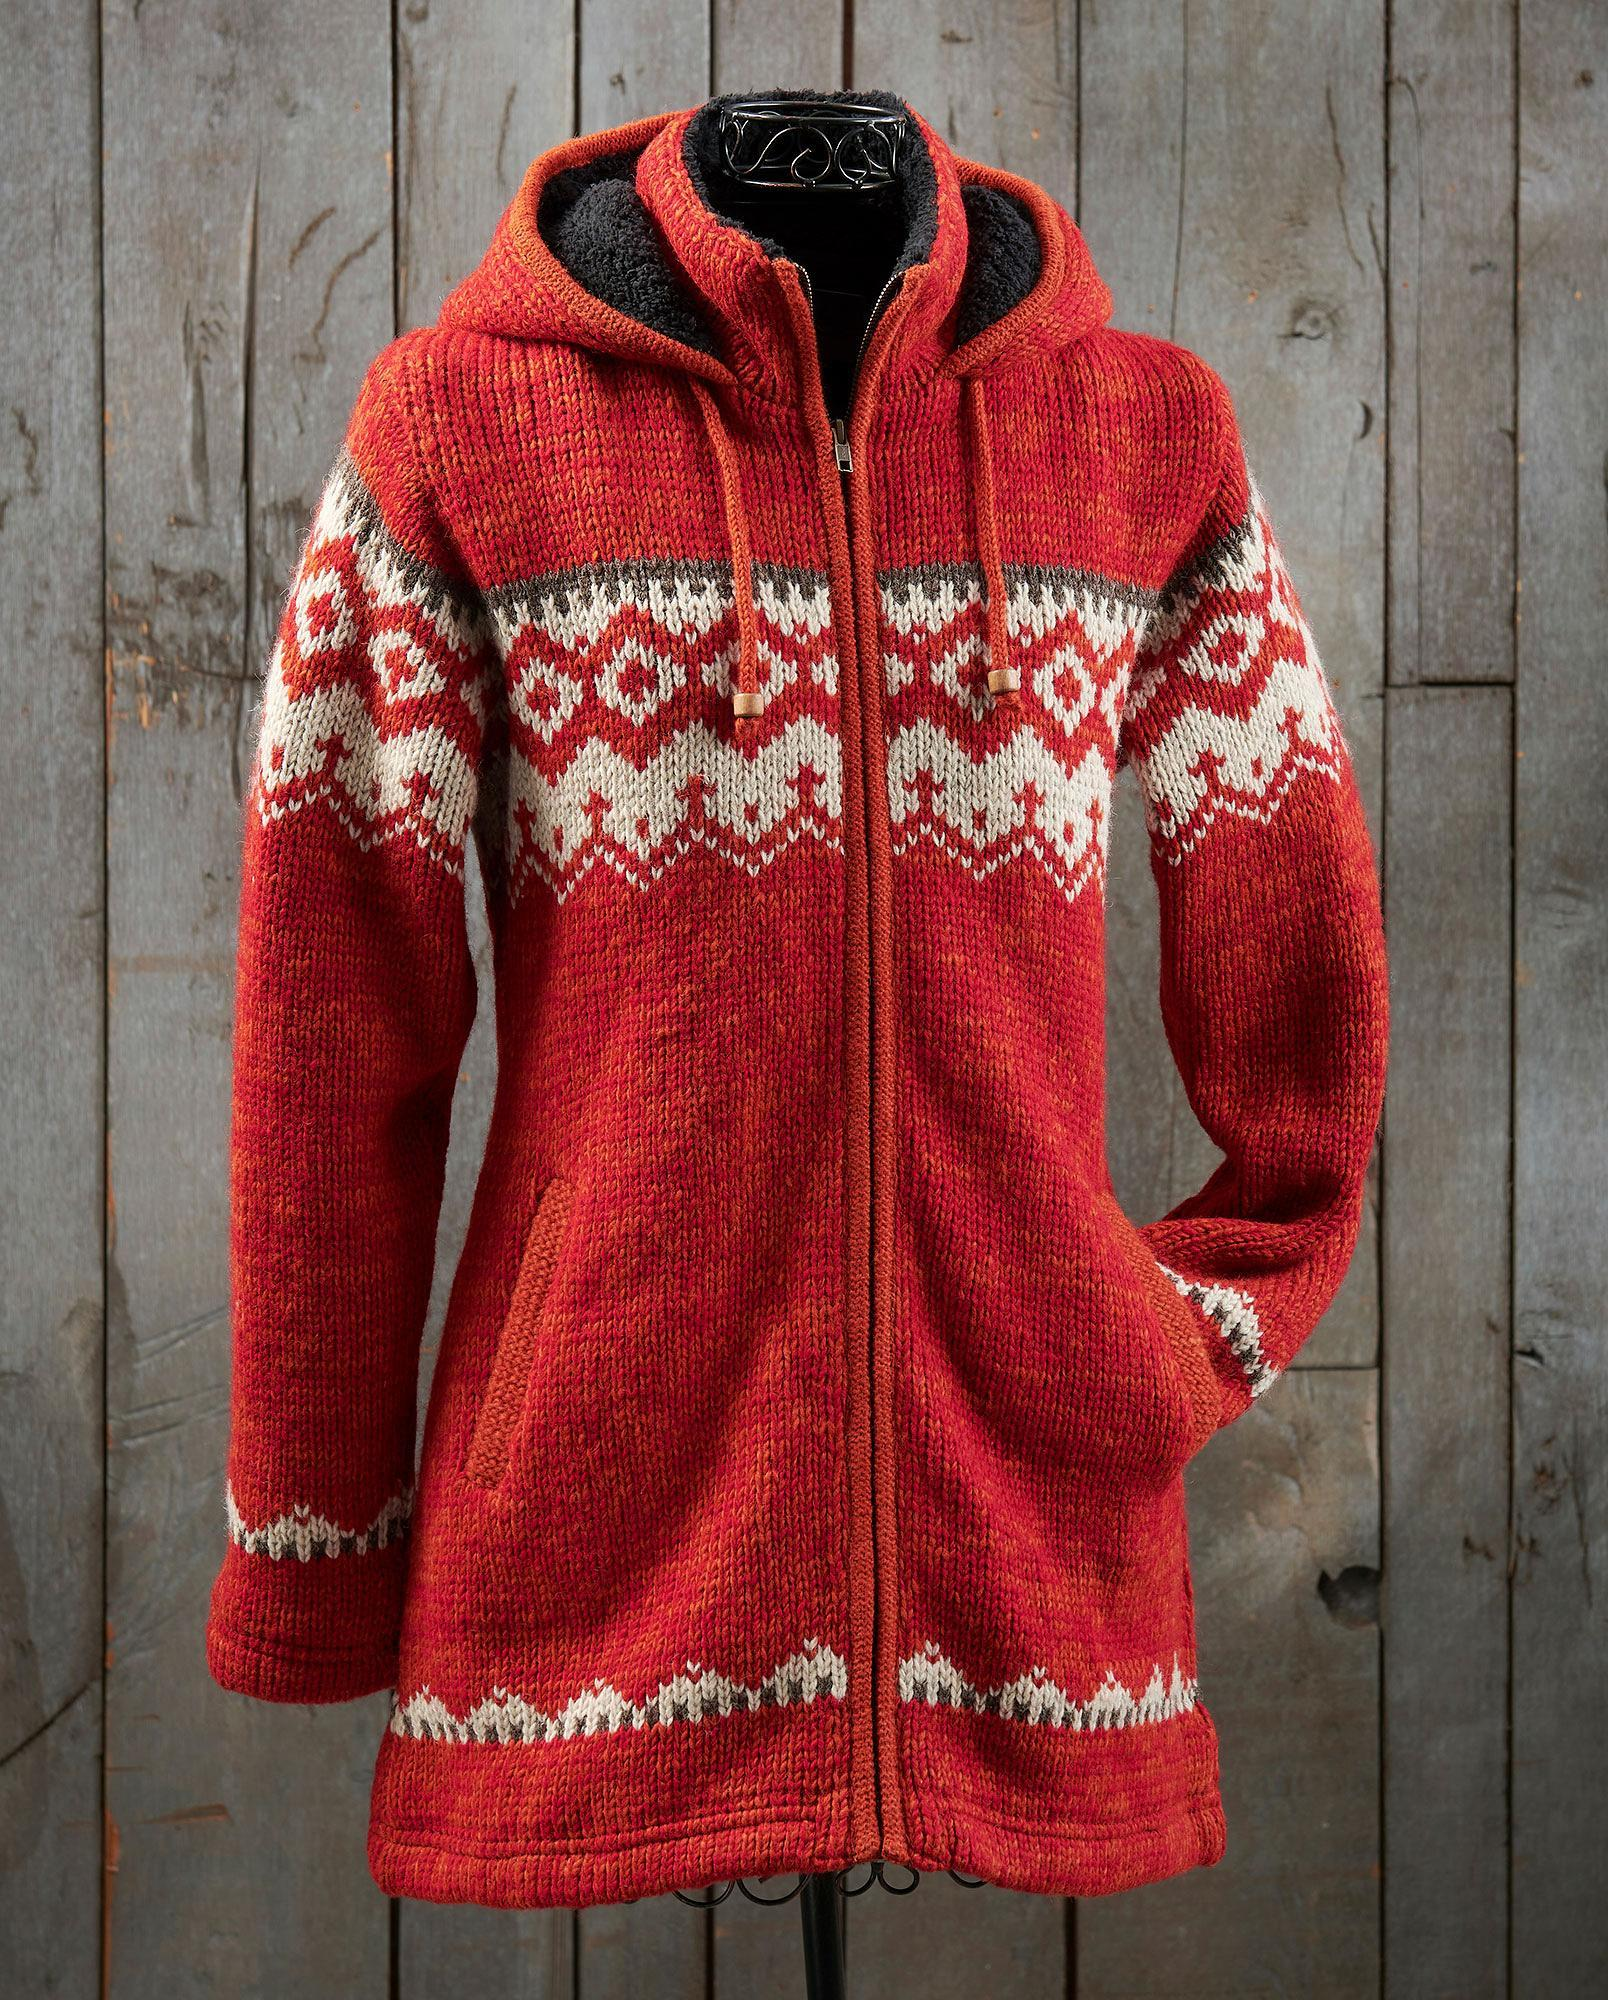 Southwest Red Long Sweater Jacket